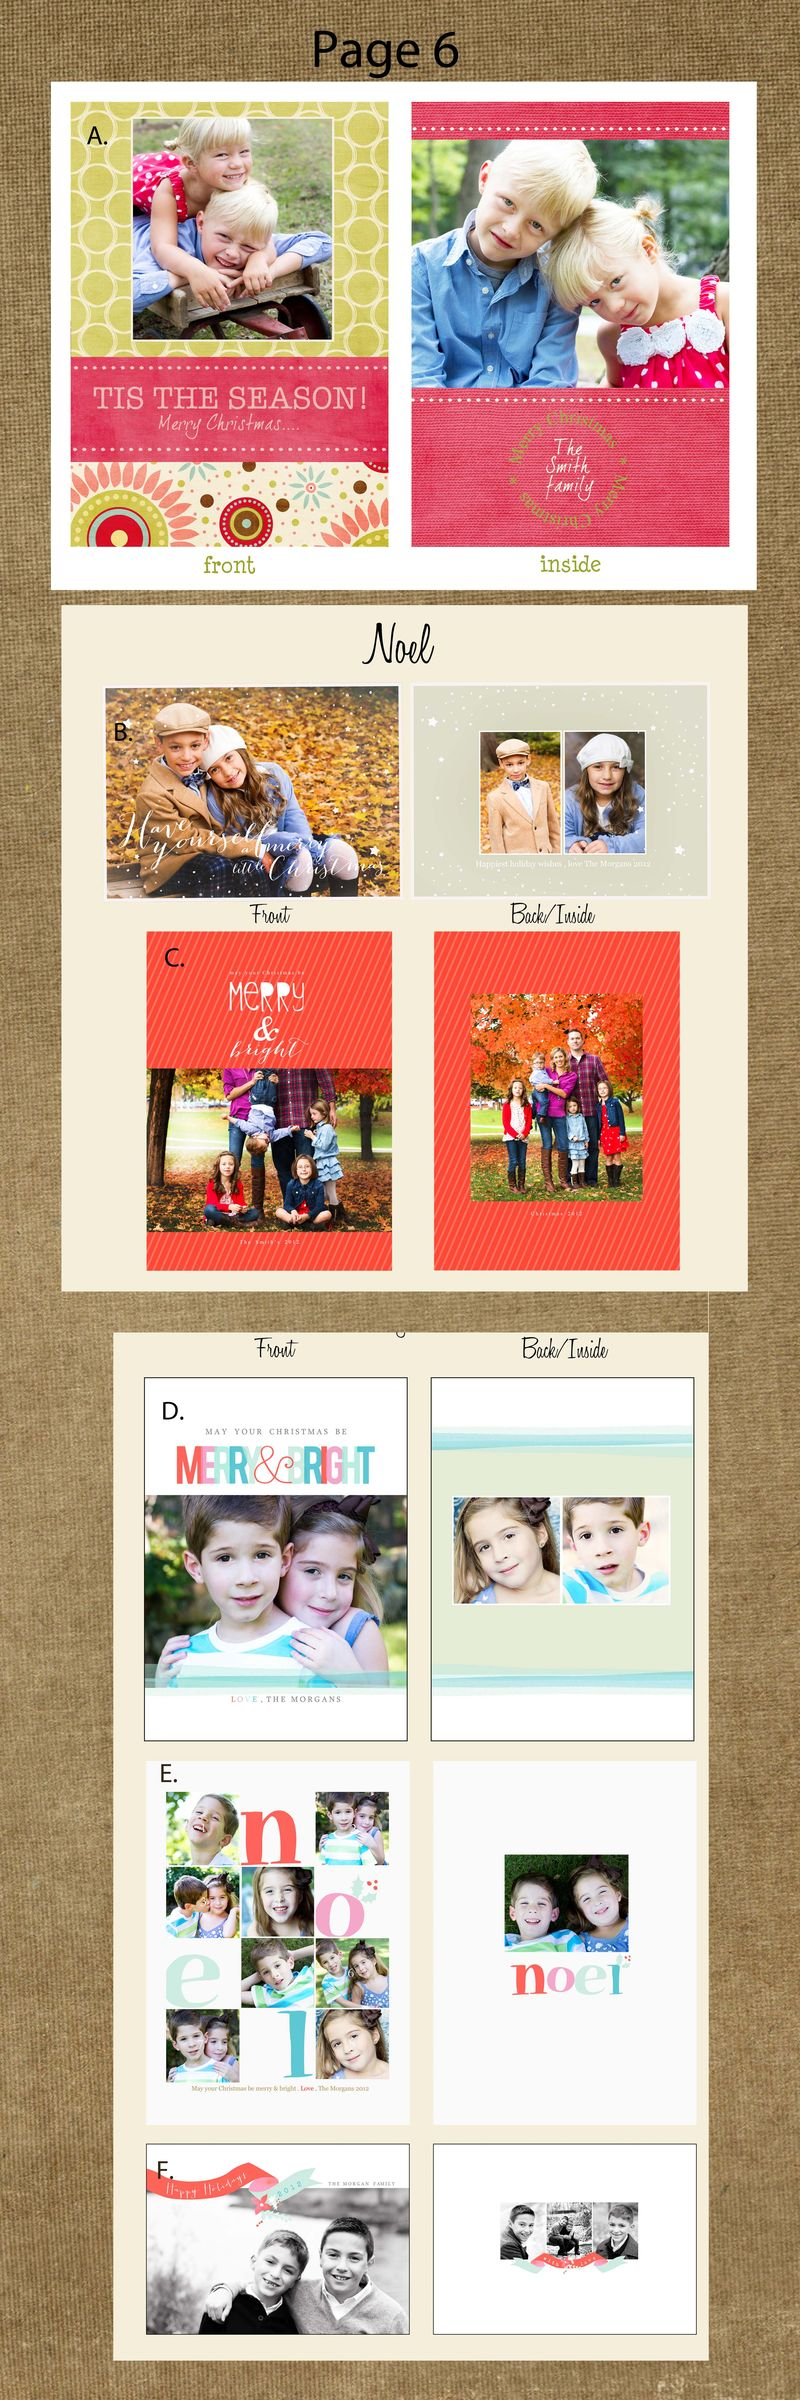 Page 6 cards